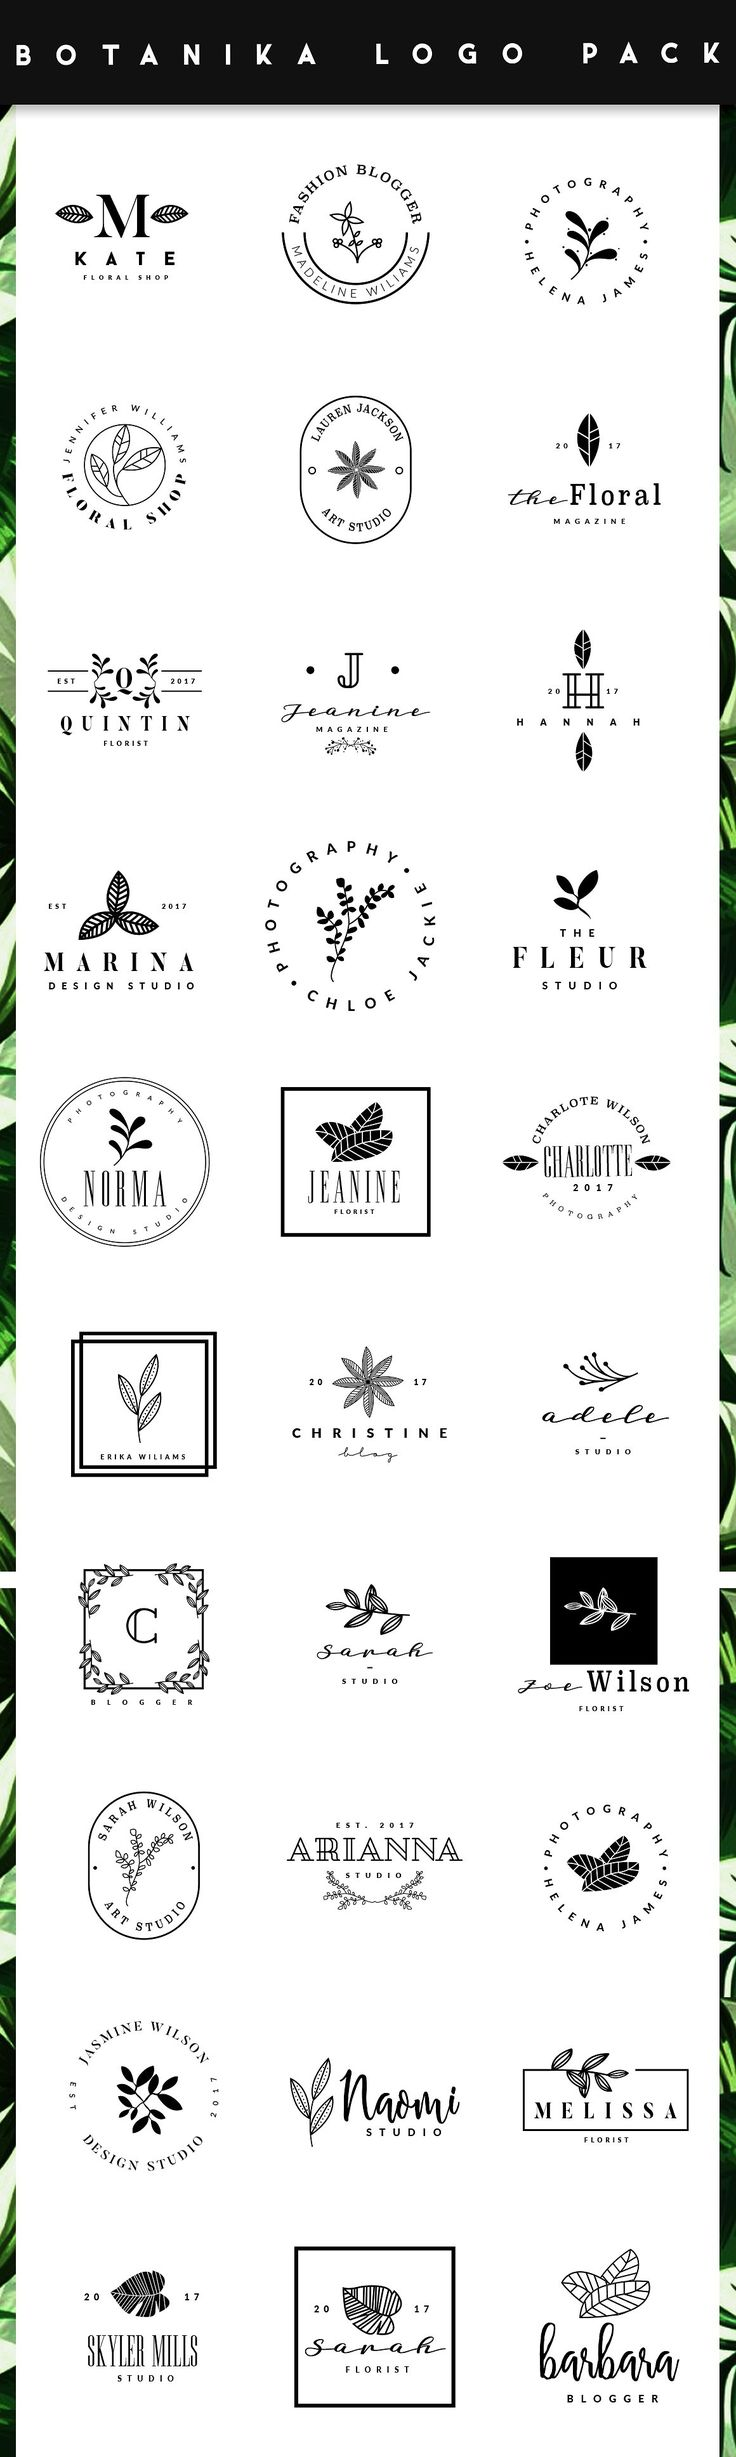 BOTANIKA Logo Pack - This Pack Includes 30 Ready Made Vector Logos that you can modify as you want to create some stunning floral designs. By Graphic Dash $9 #affiliatelink